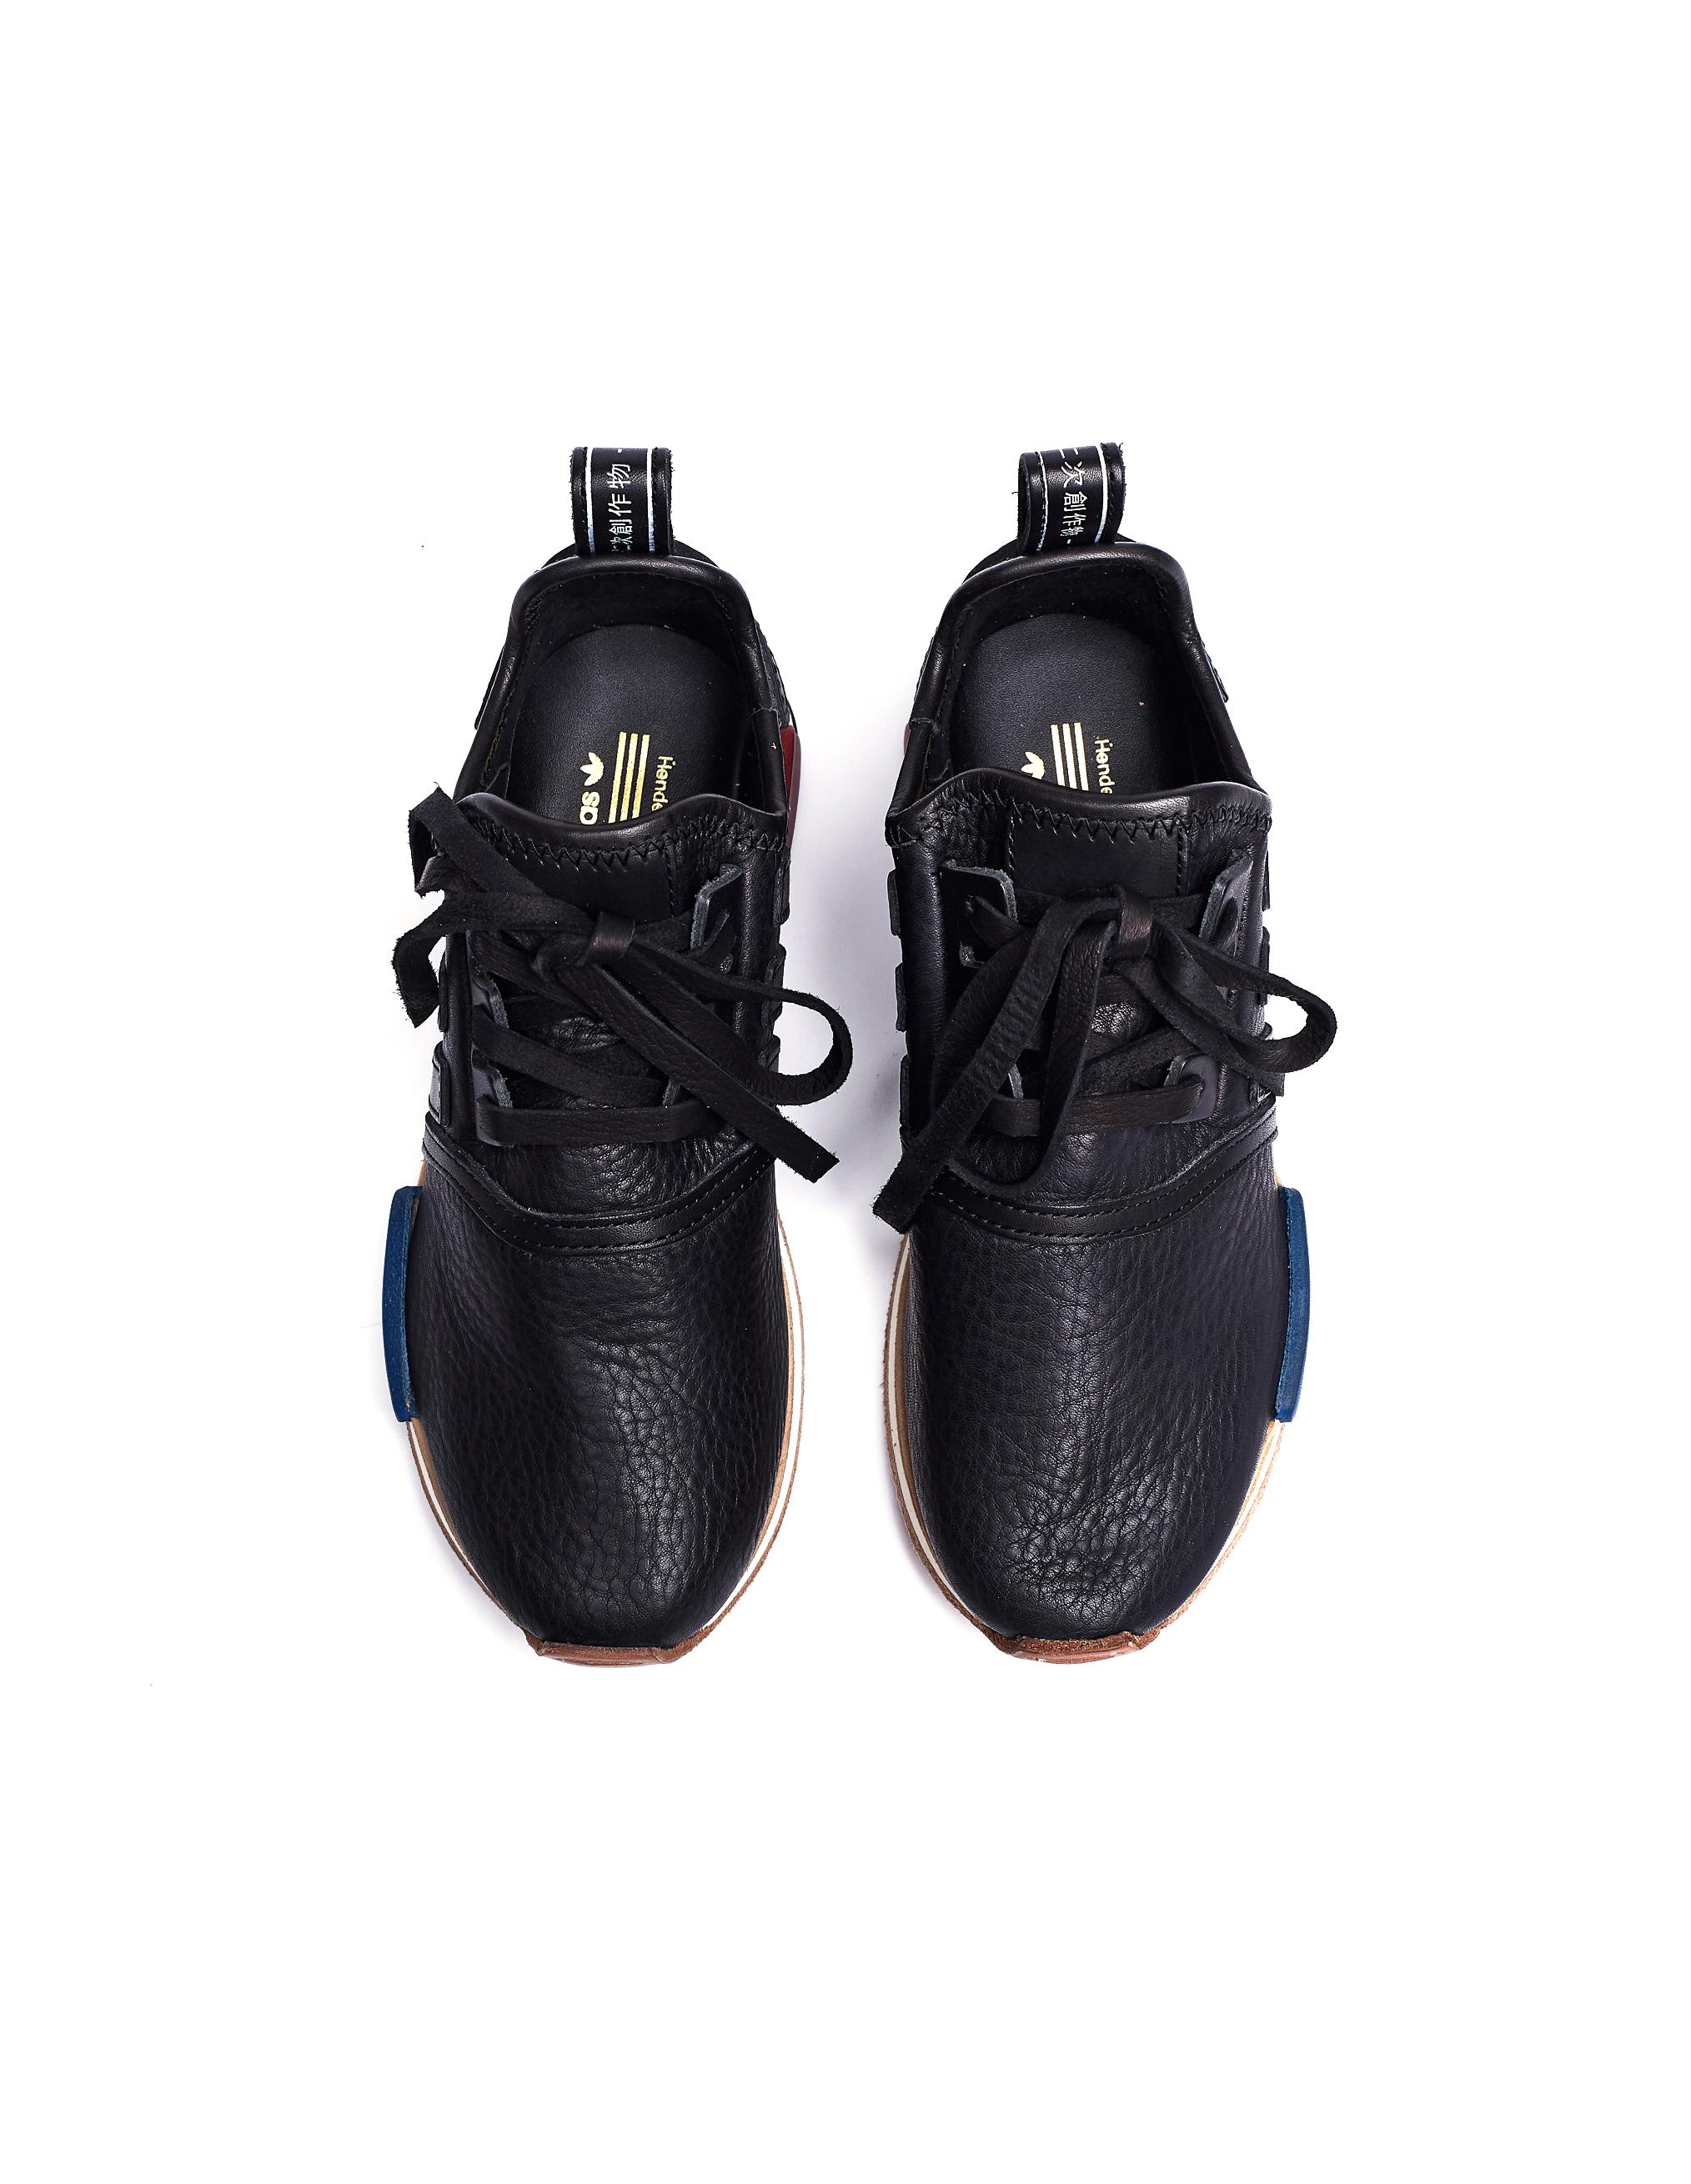 Adidas Nmd R1 Black Leather Sneakers